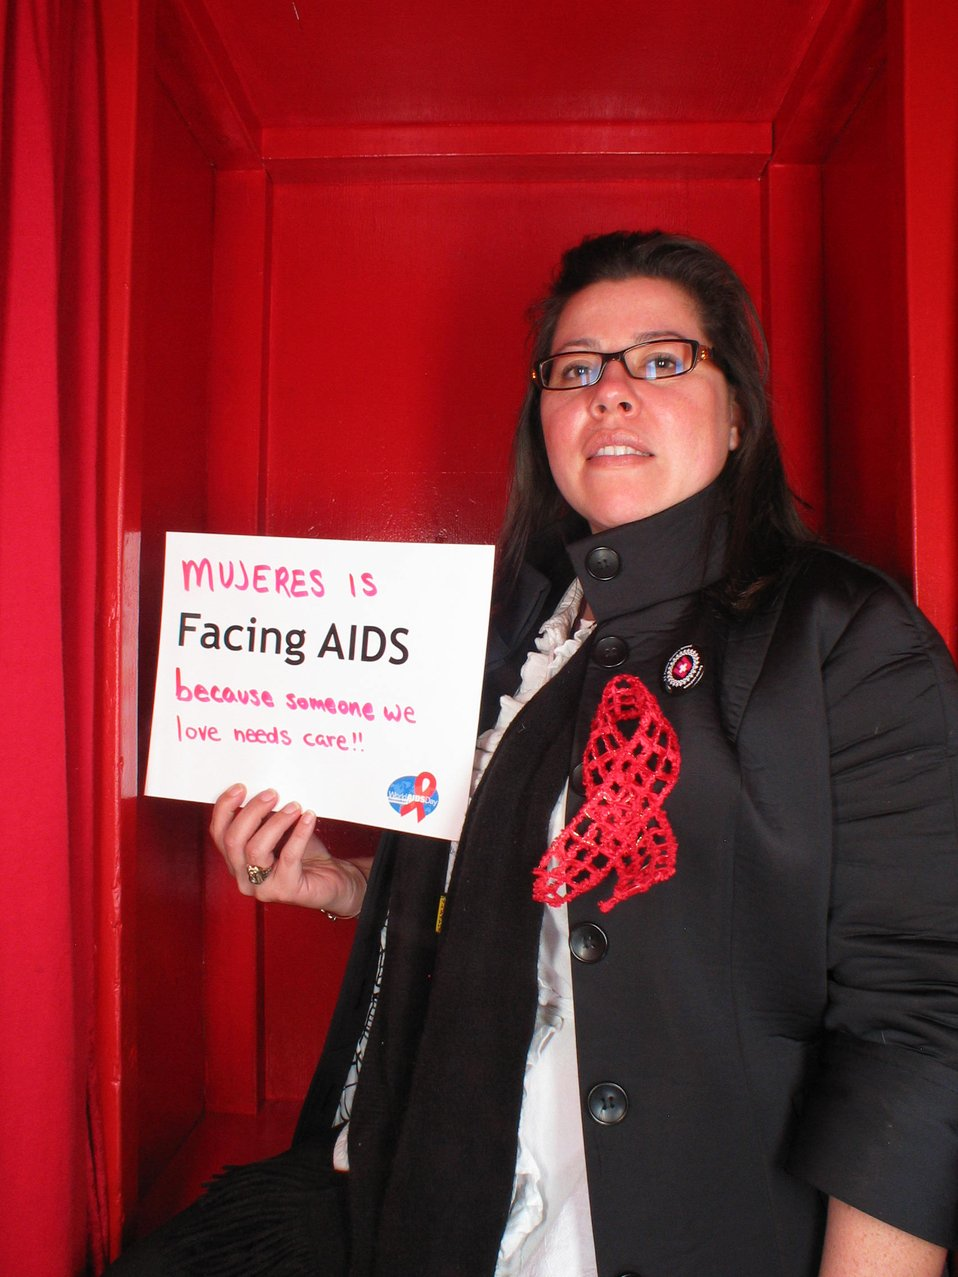 Facing AIDS because someone we love needs care!!!